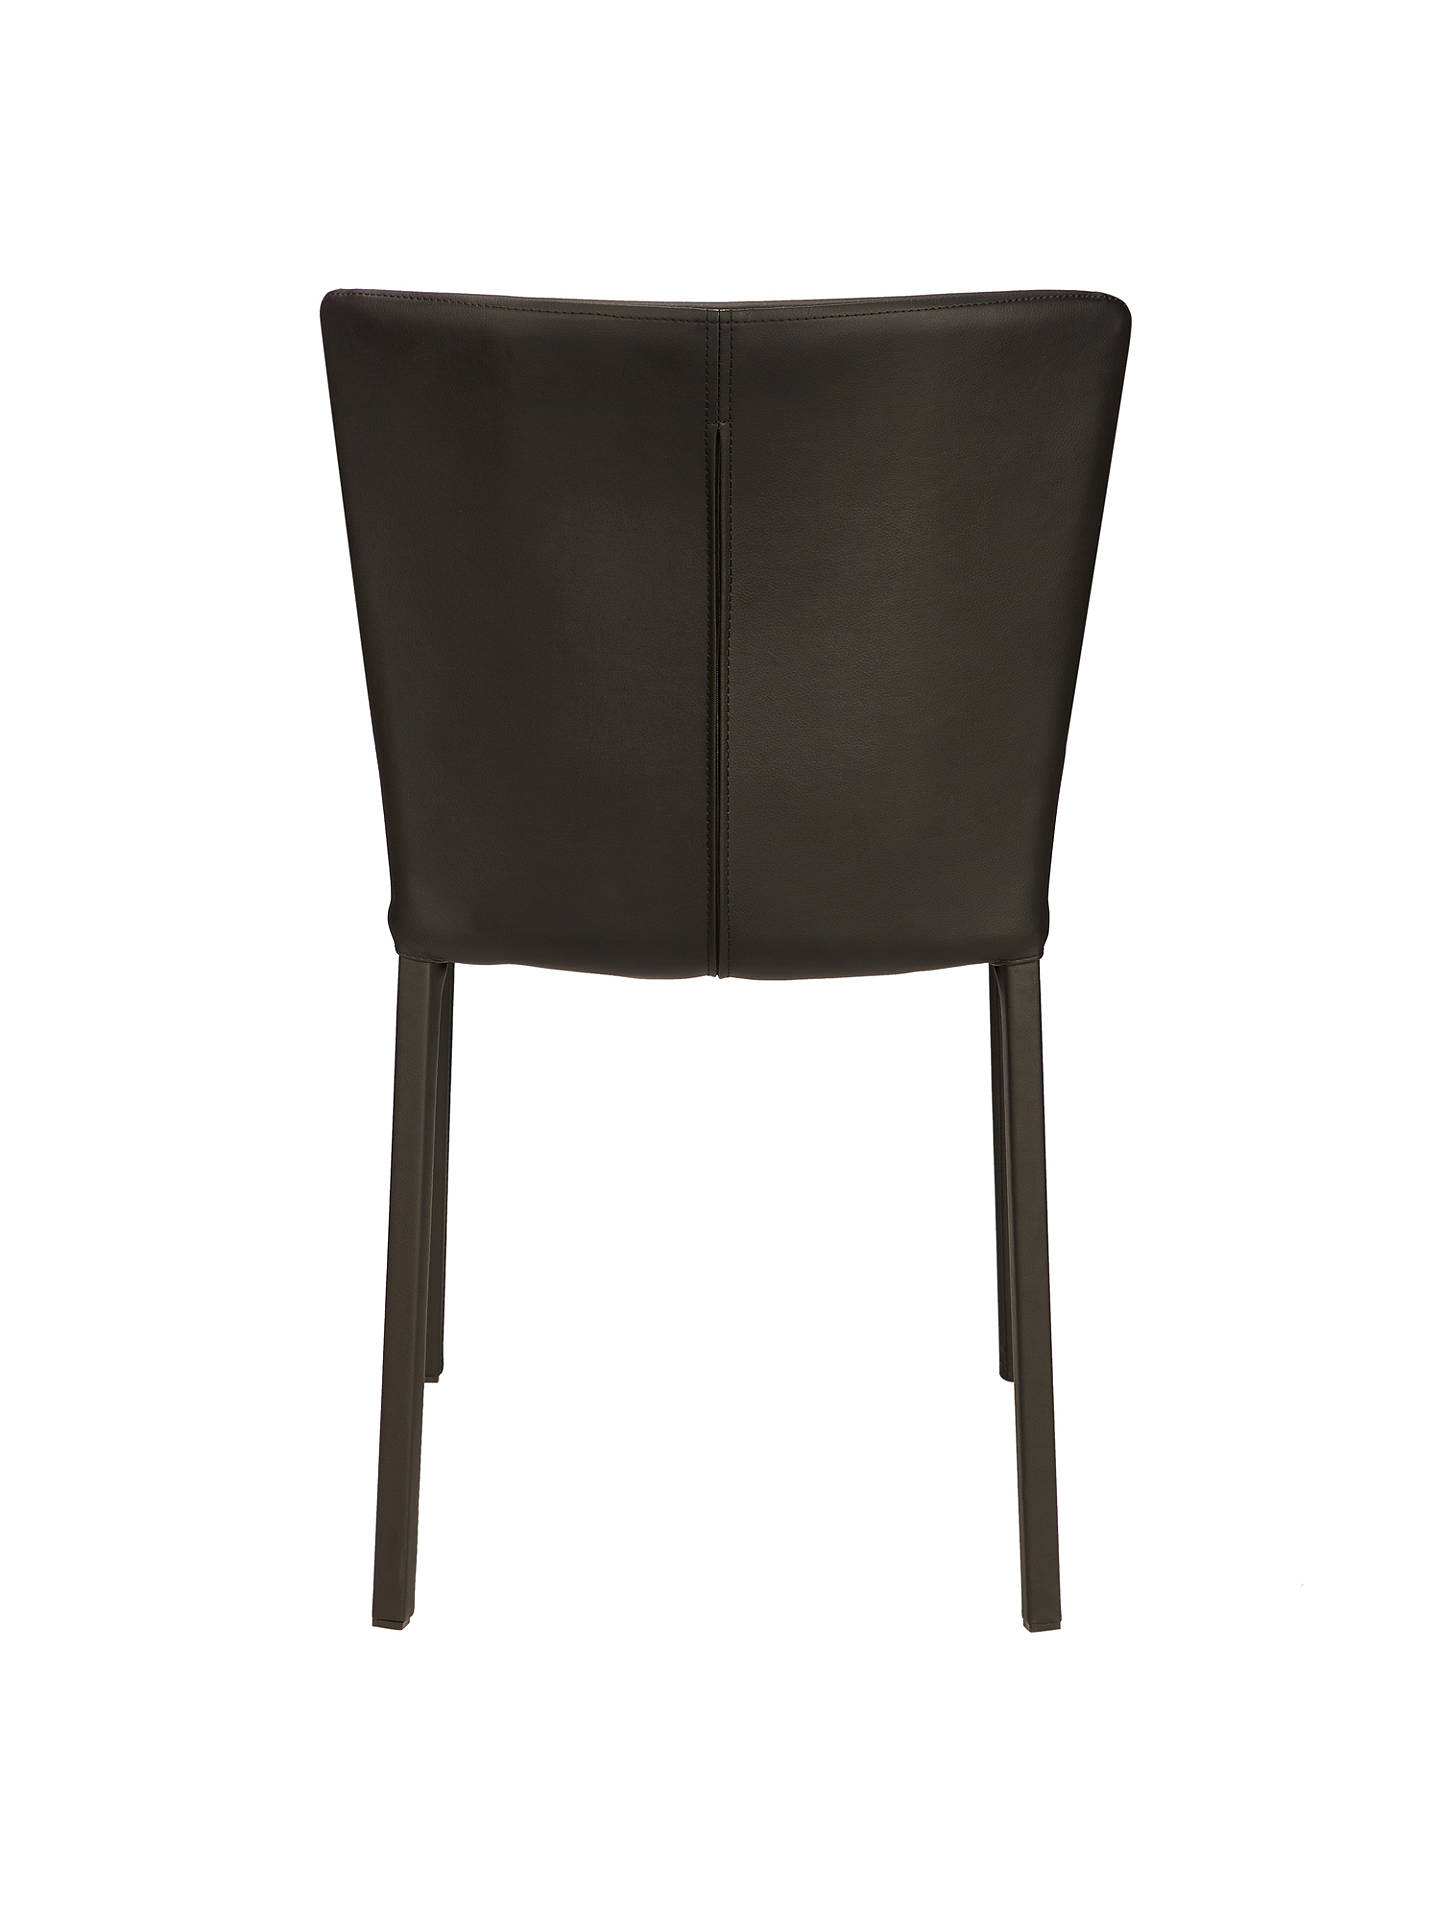 Buy John Lewis & Partners Dominique Dining Chair, Black Online at johnlewis.com